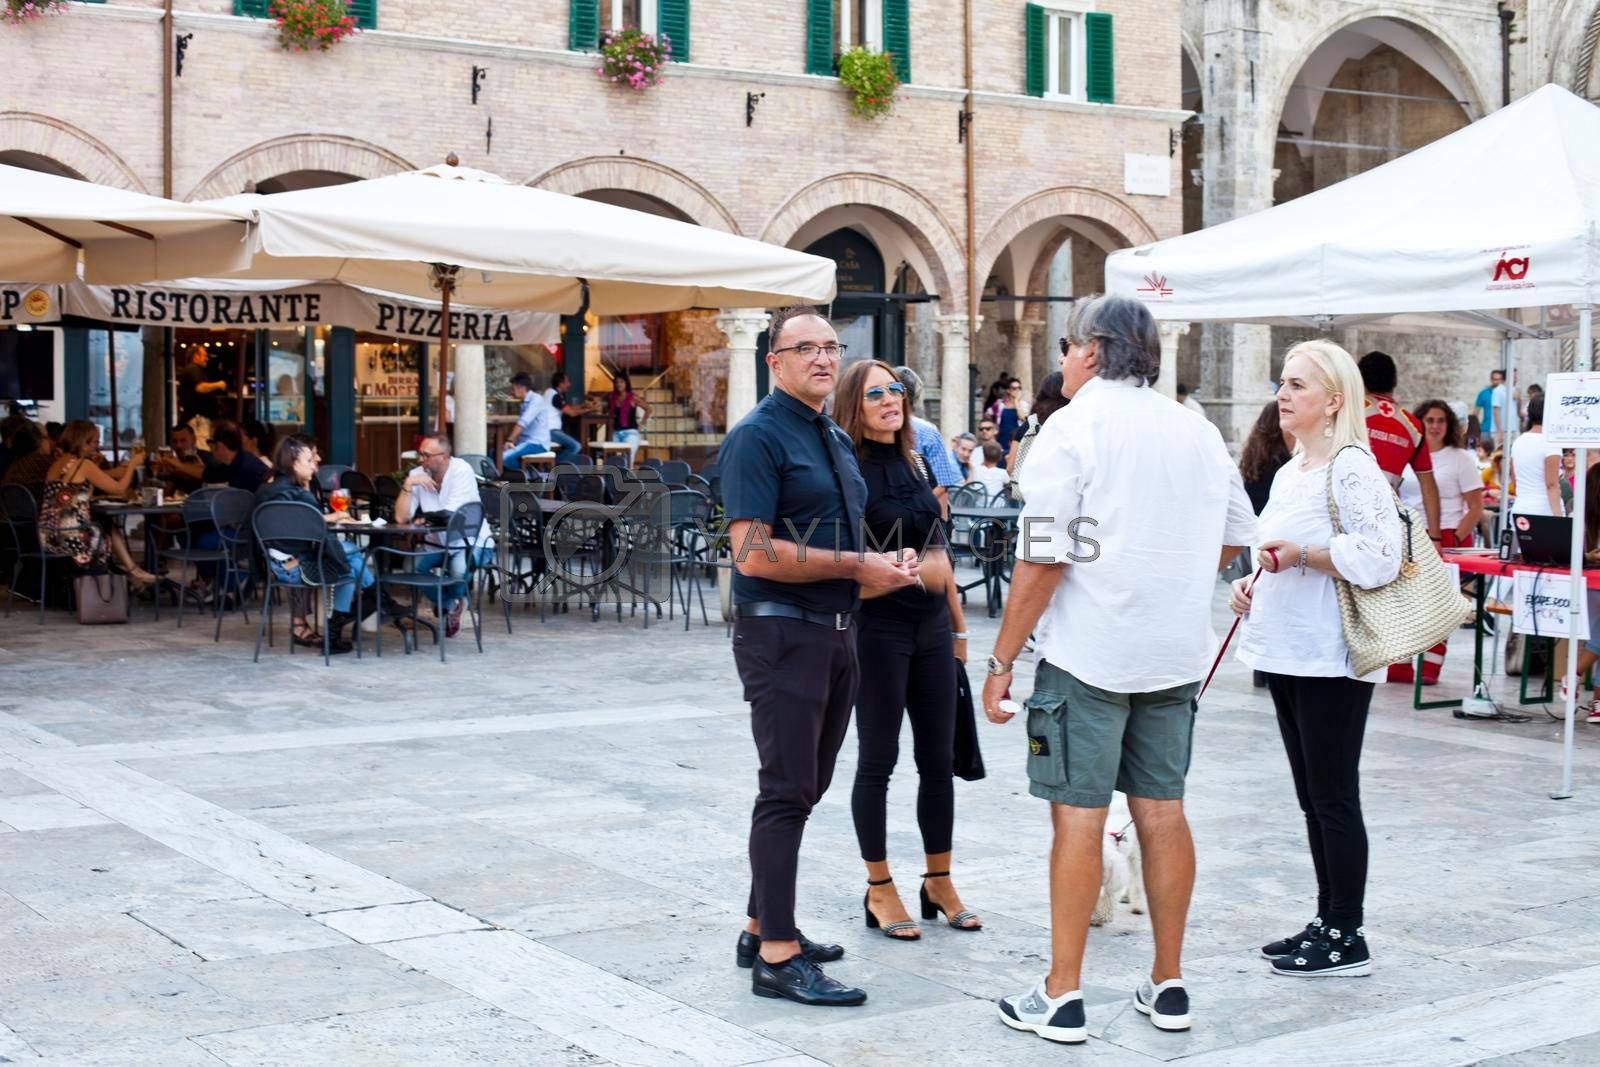 Ascoli Piceno, Italy - September 9, 2019: People enjoying happy day and food at outdoor restaurant and resting.